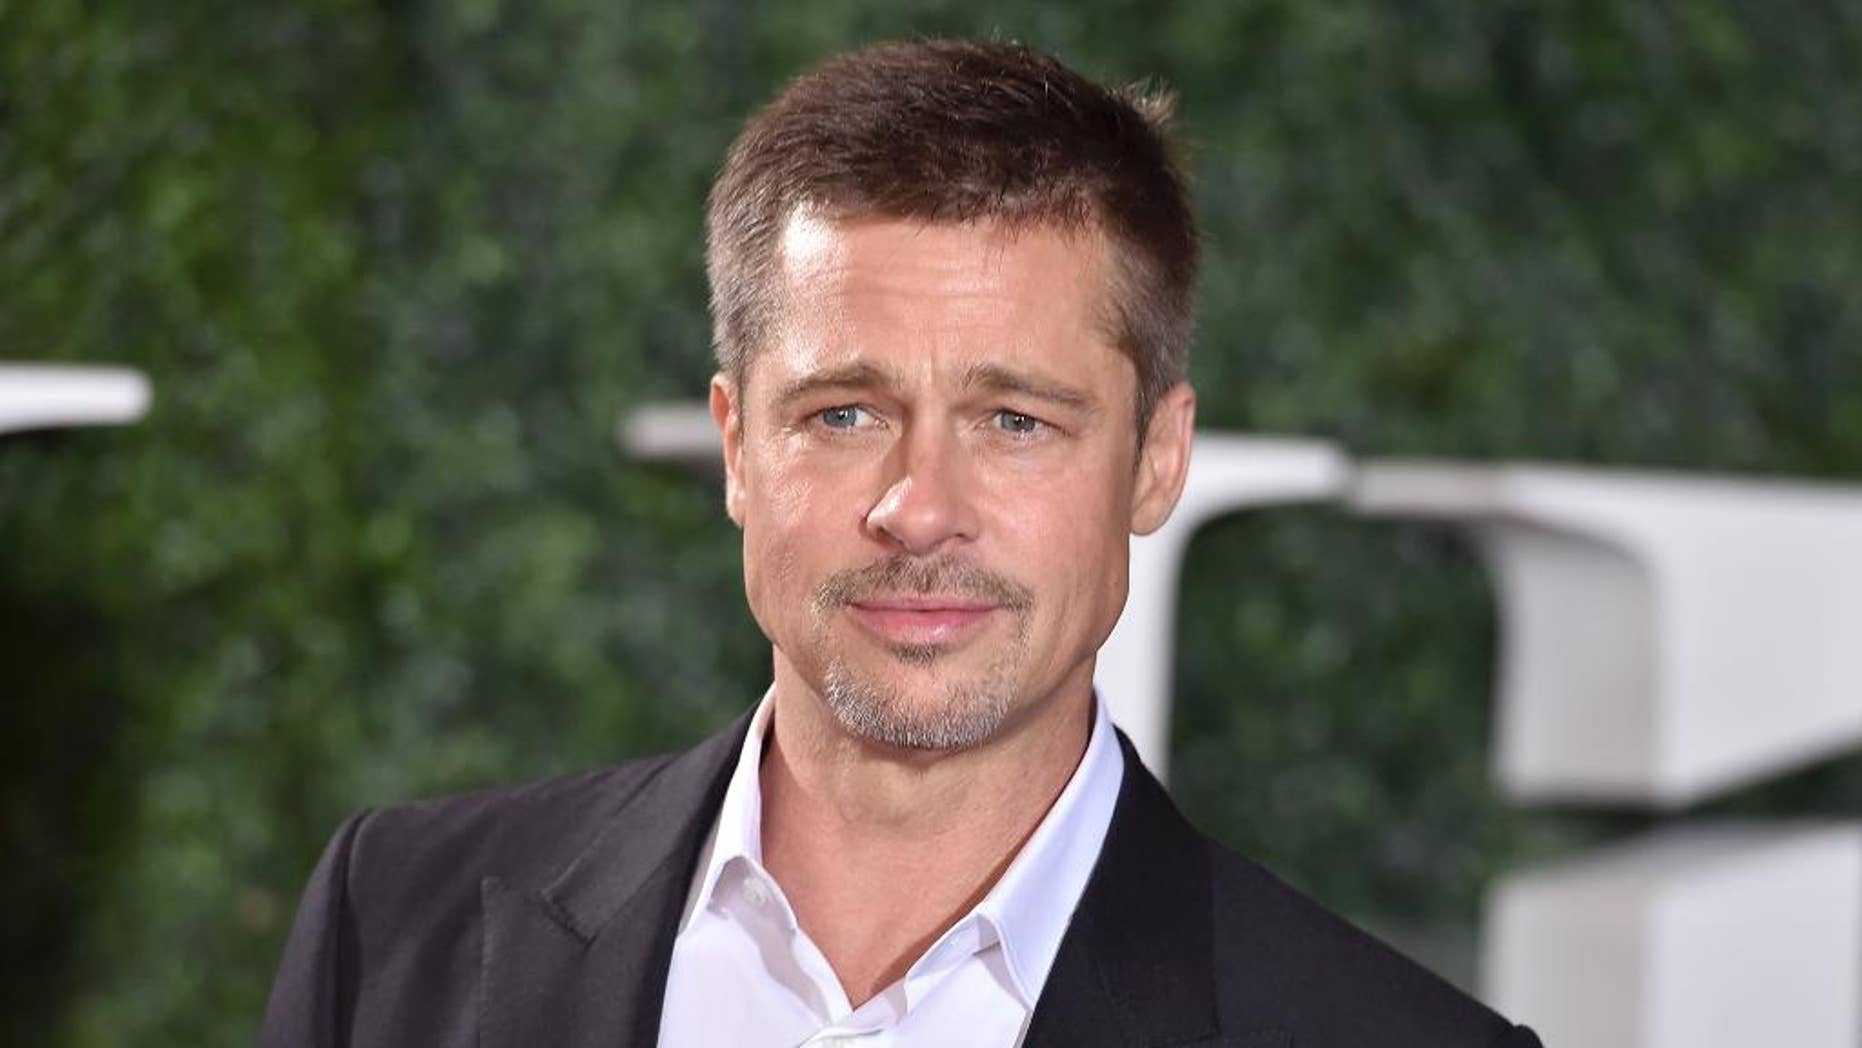 """FILE - In this Nov. 9, 2016 file photo, Brad Pitt arrives at the Los Angeles premiere of """"Allied."""" Pitt stars in the new film, """"War Machine,"""" in which he plays a slightly fictionalized version of Gen. Stanley McChrystal. (Photo by Jordan Strauss/Invision/AP, File)"""